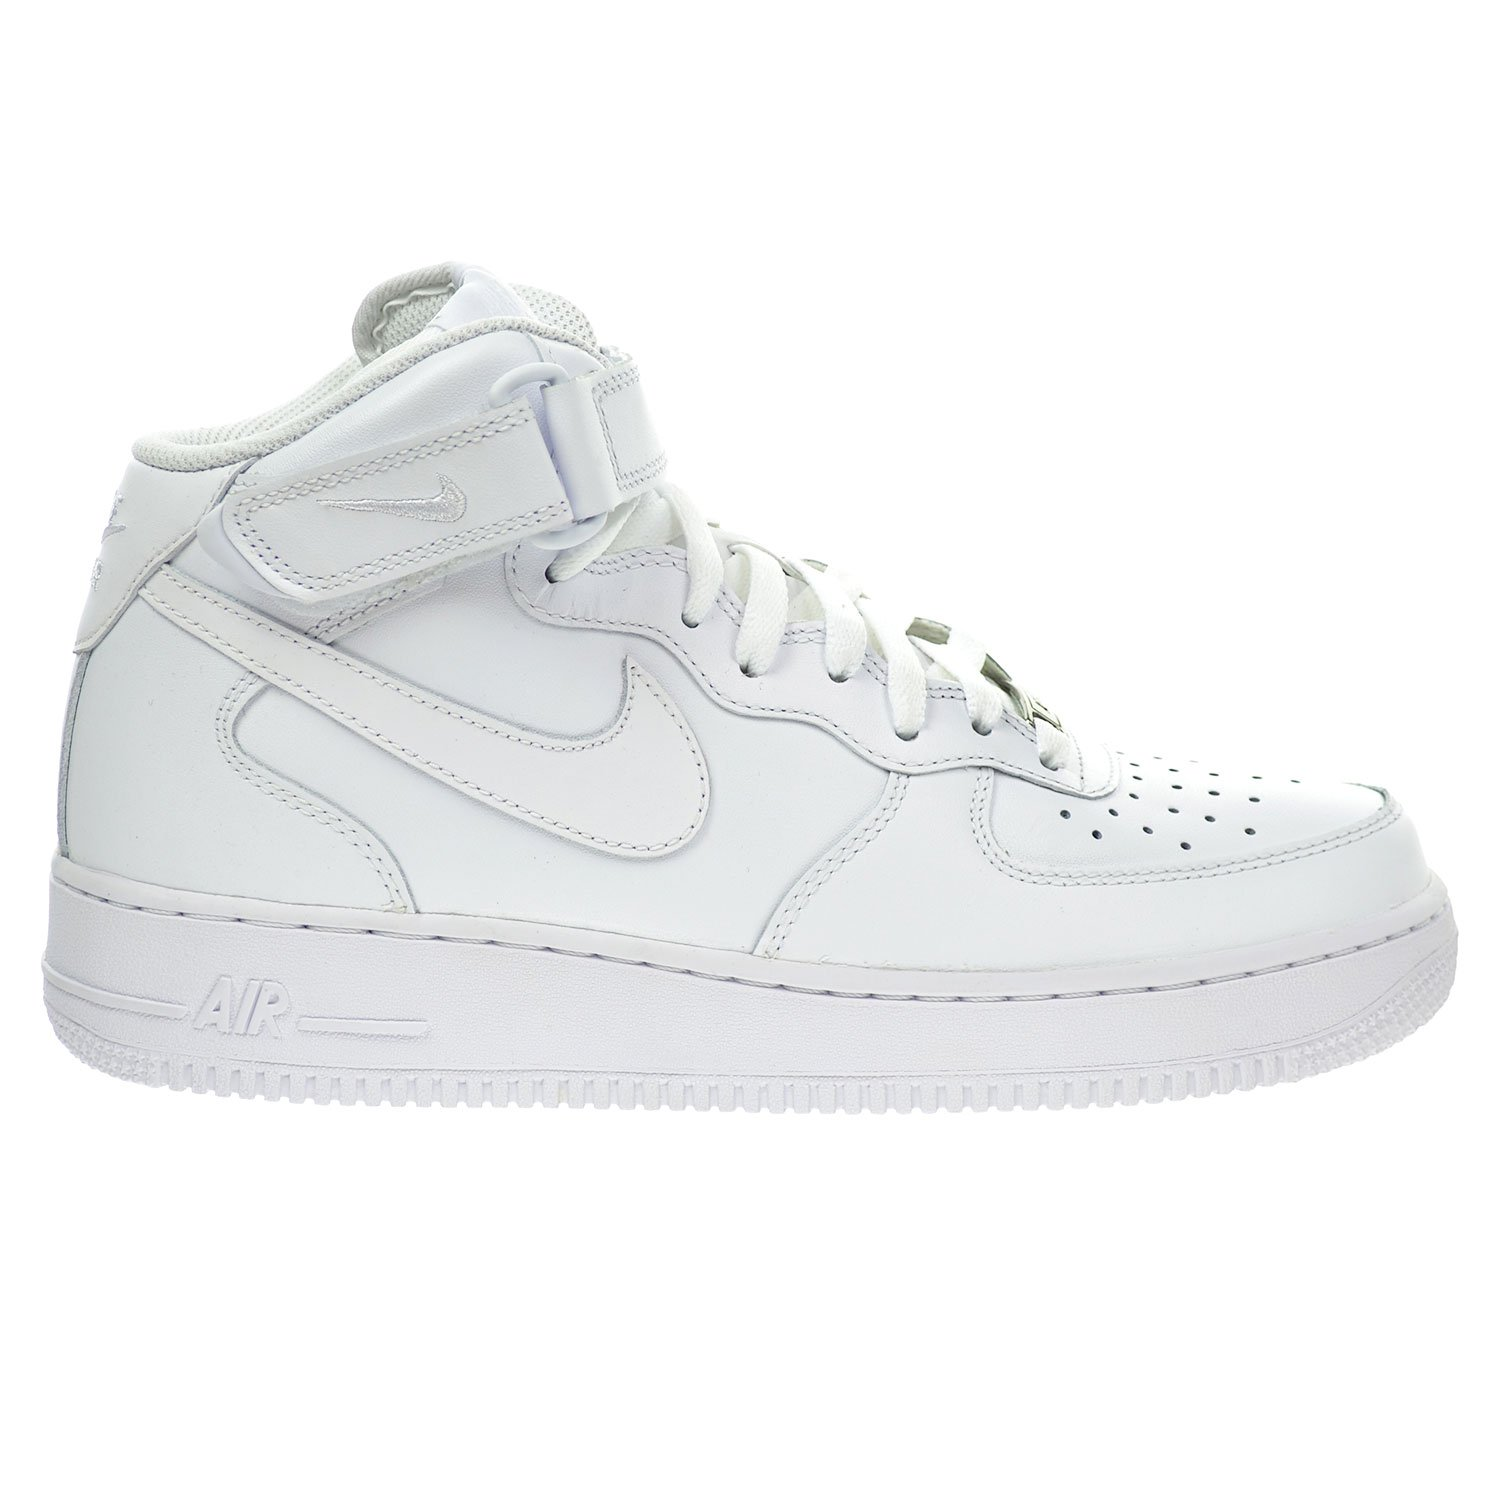 best loved ca6b9 b606c Galleon - Nike 315123-111  Mens Air Force 1 Mid White White Basketball  Sneaker (10.5 D(M) US)